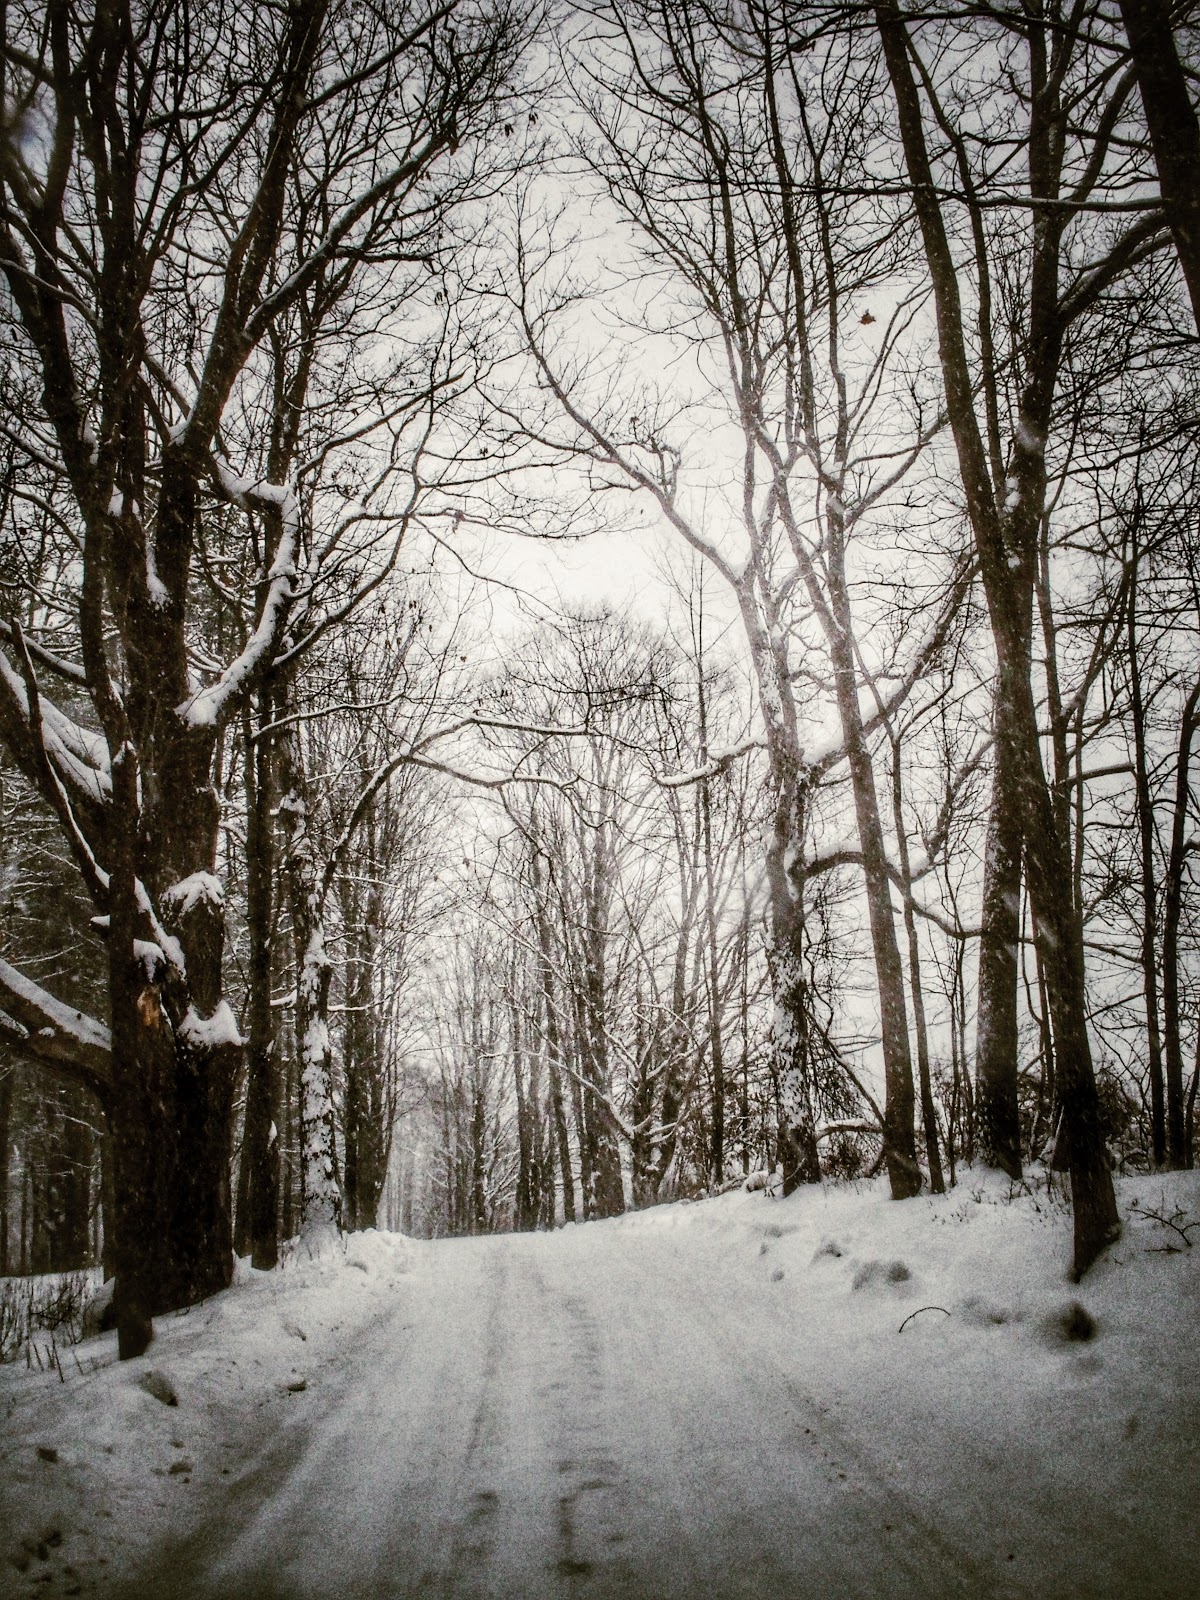 Snowy Vermont Country Road, #snow #snowstorm #hercules #vermont 2013